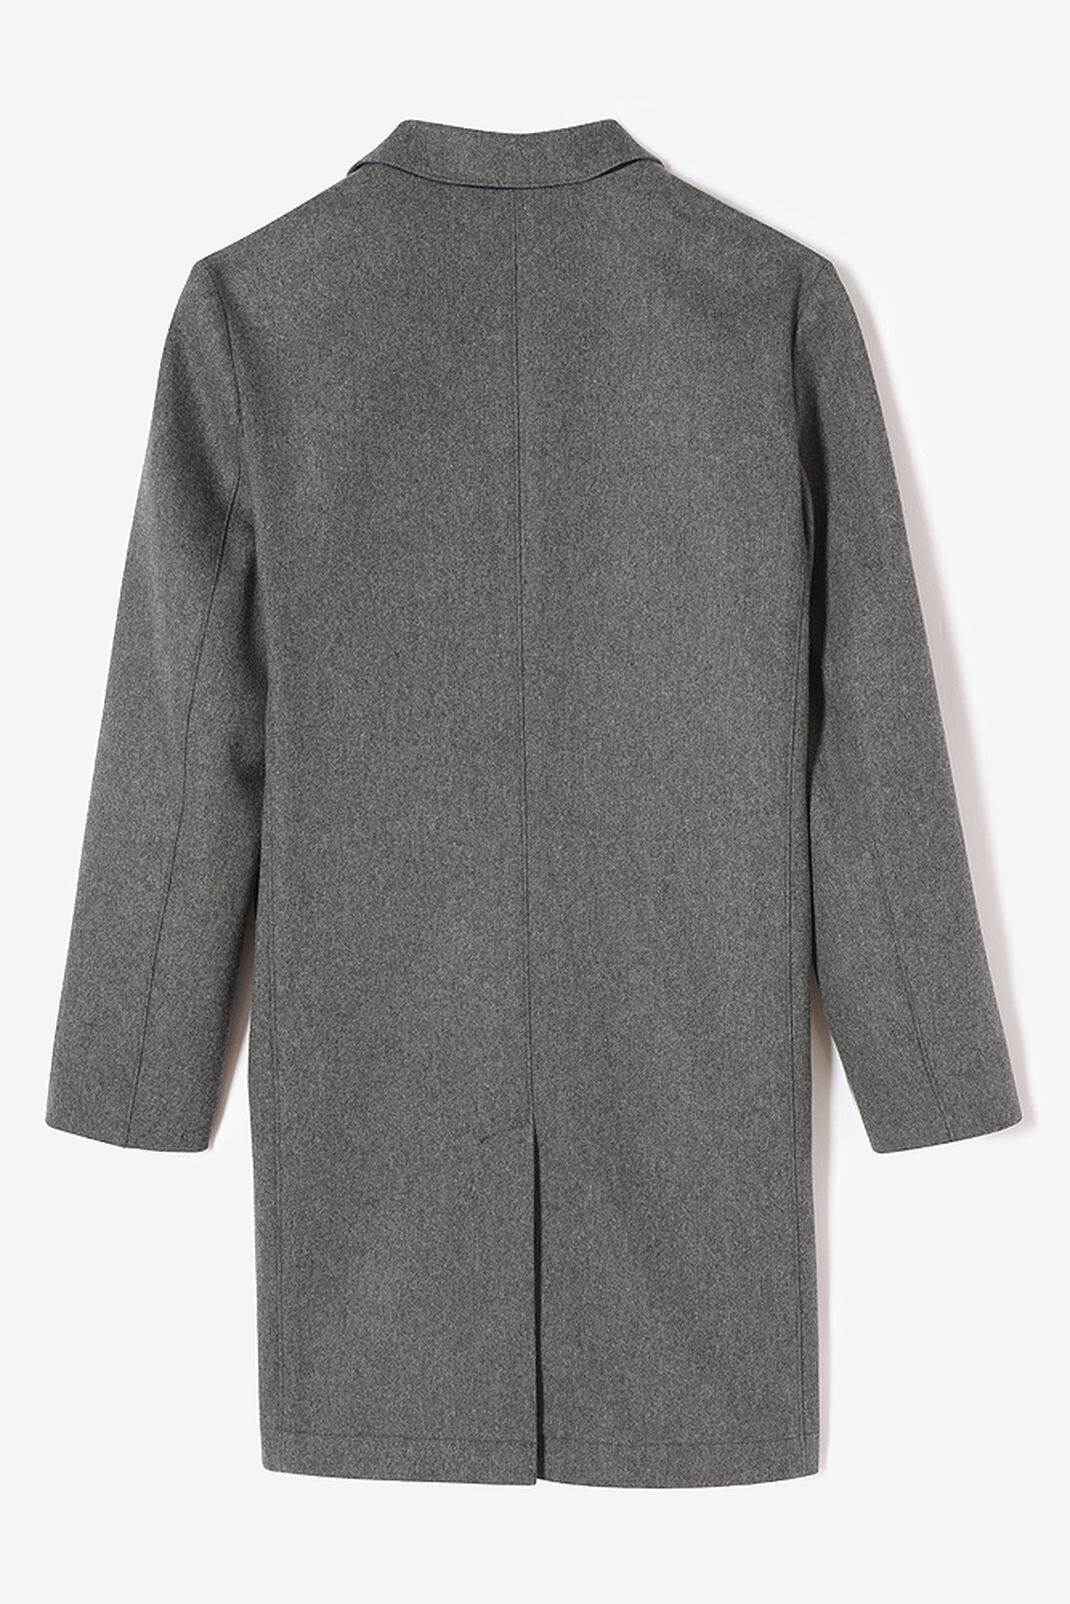 MIDDLE GREY Scuba Wool Coat for men KENZO